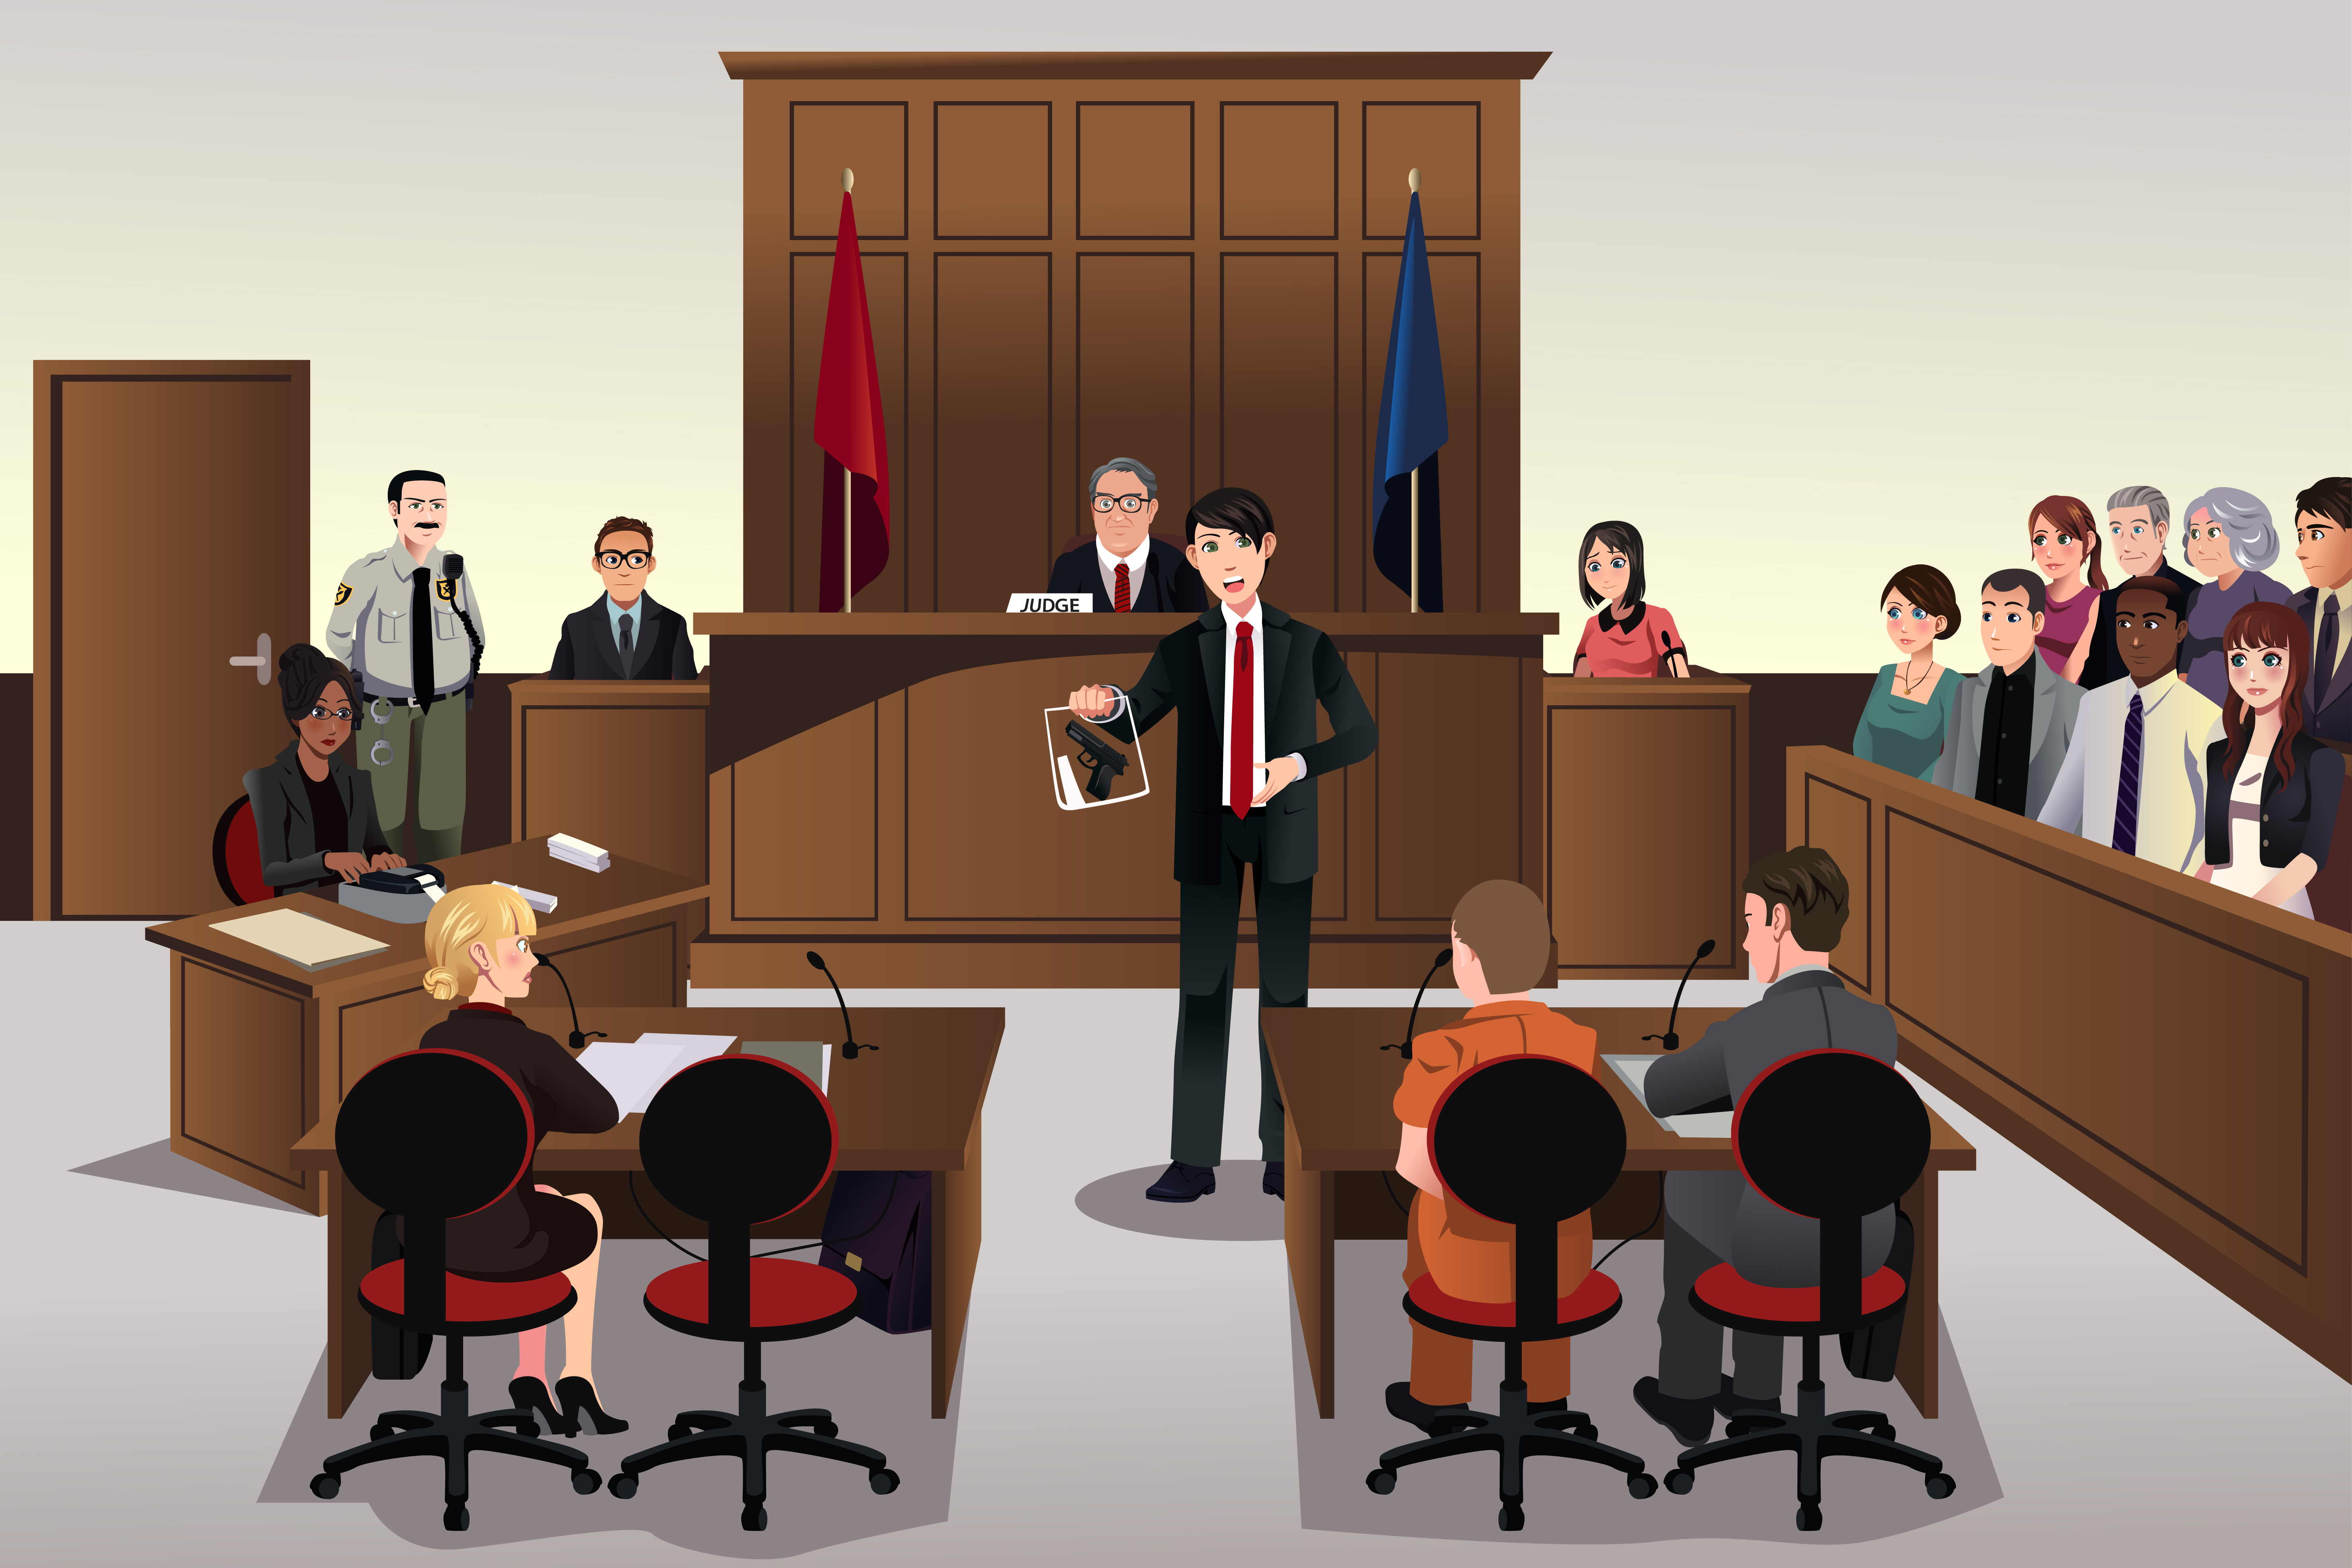 taking it to trial can be risky hergott law